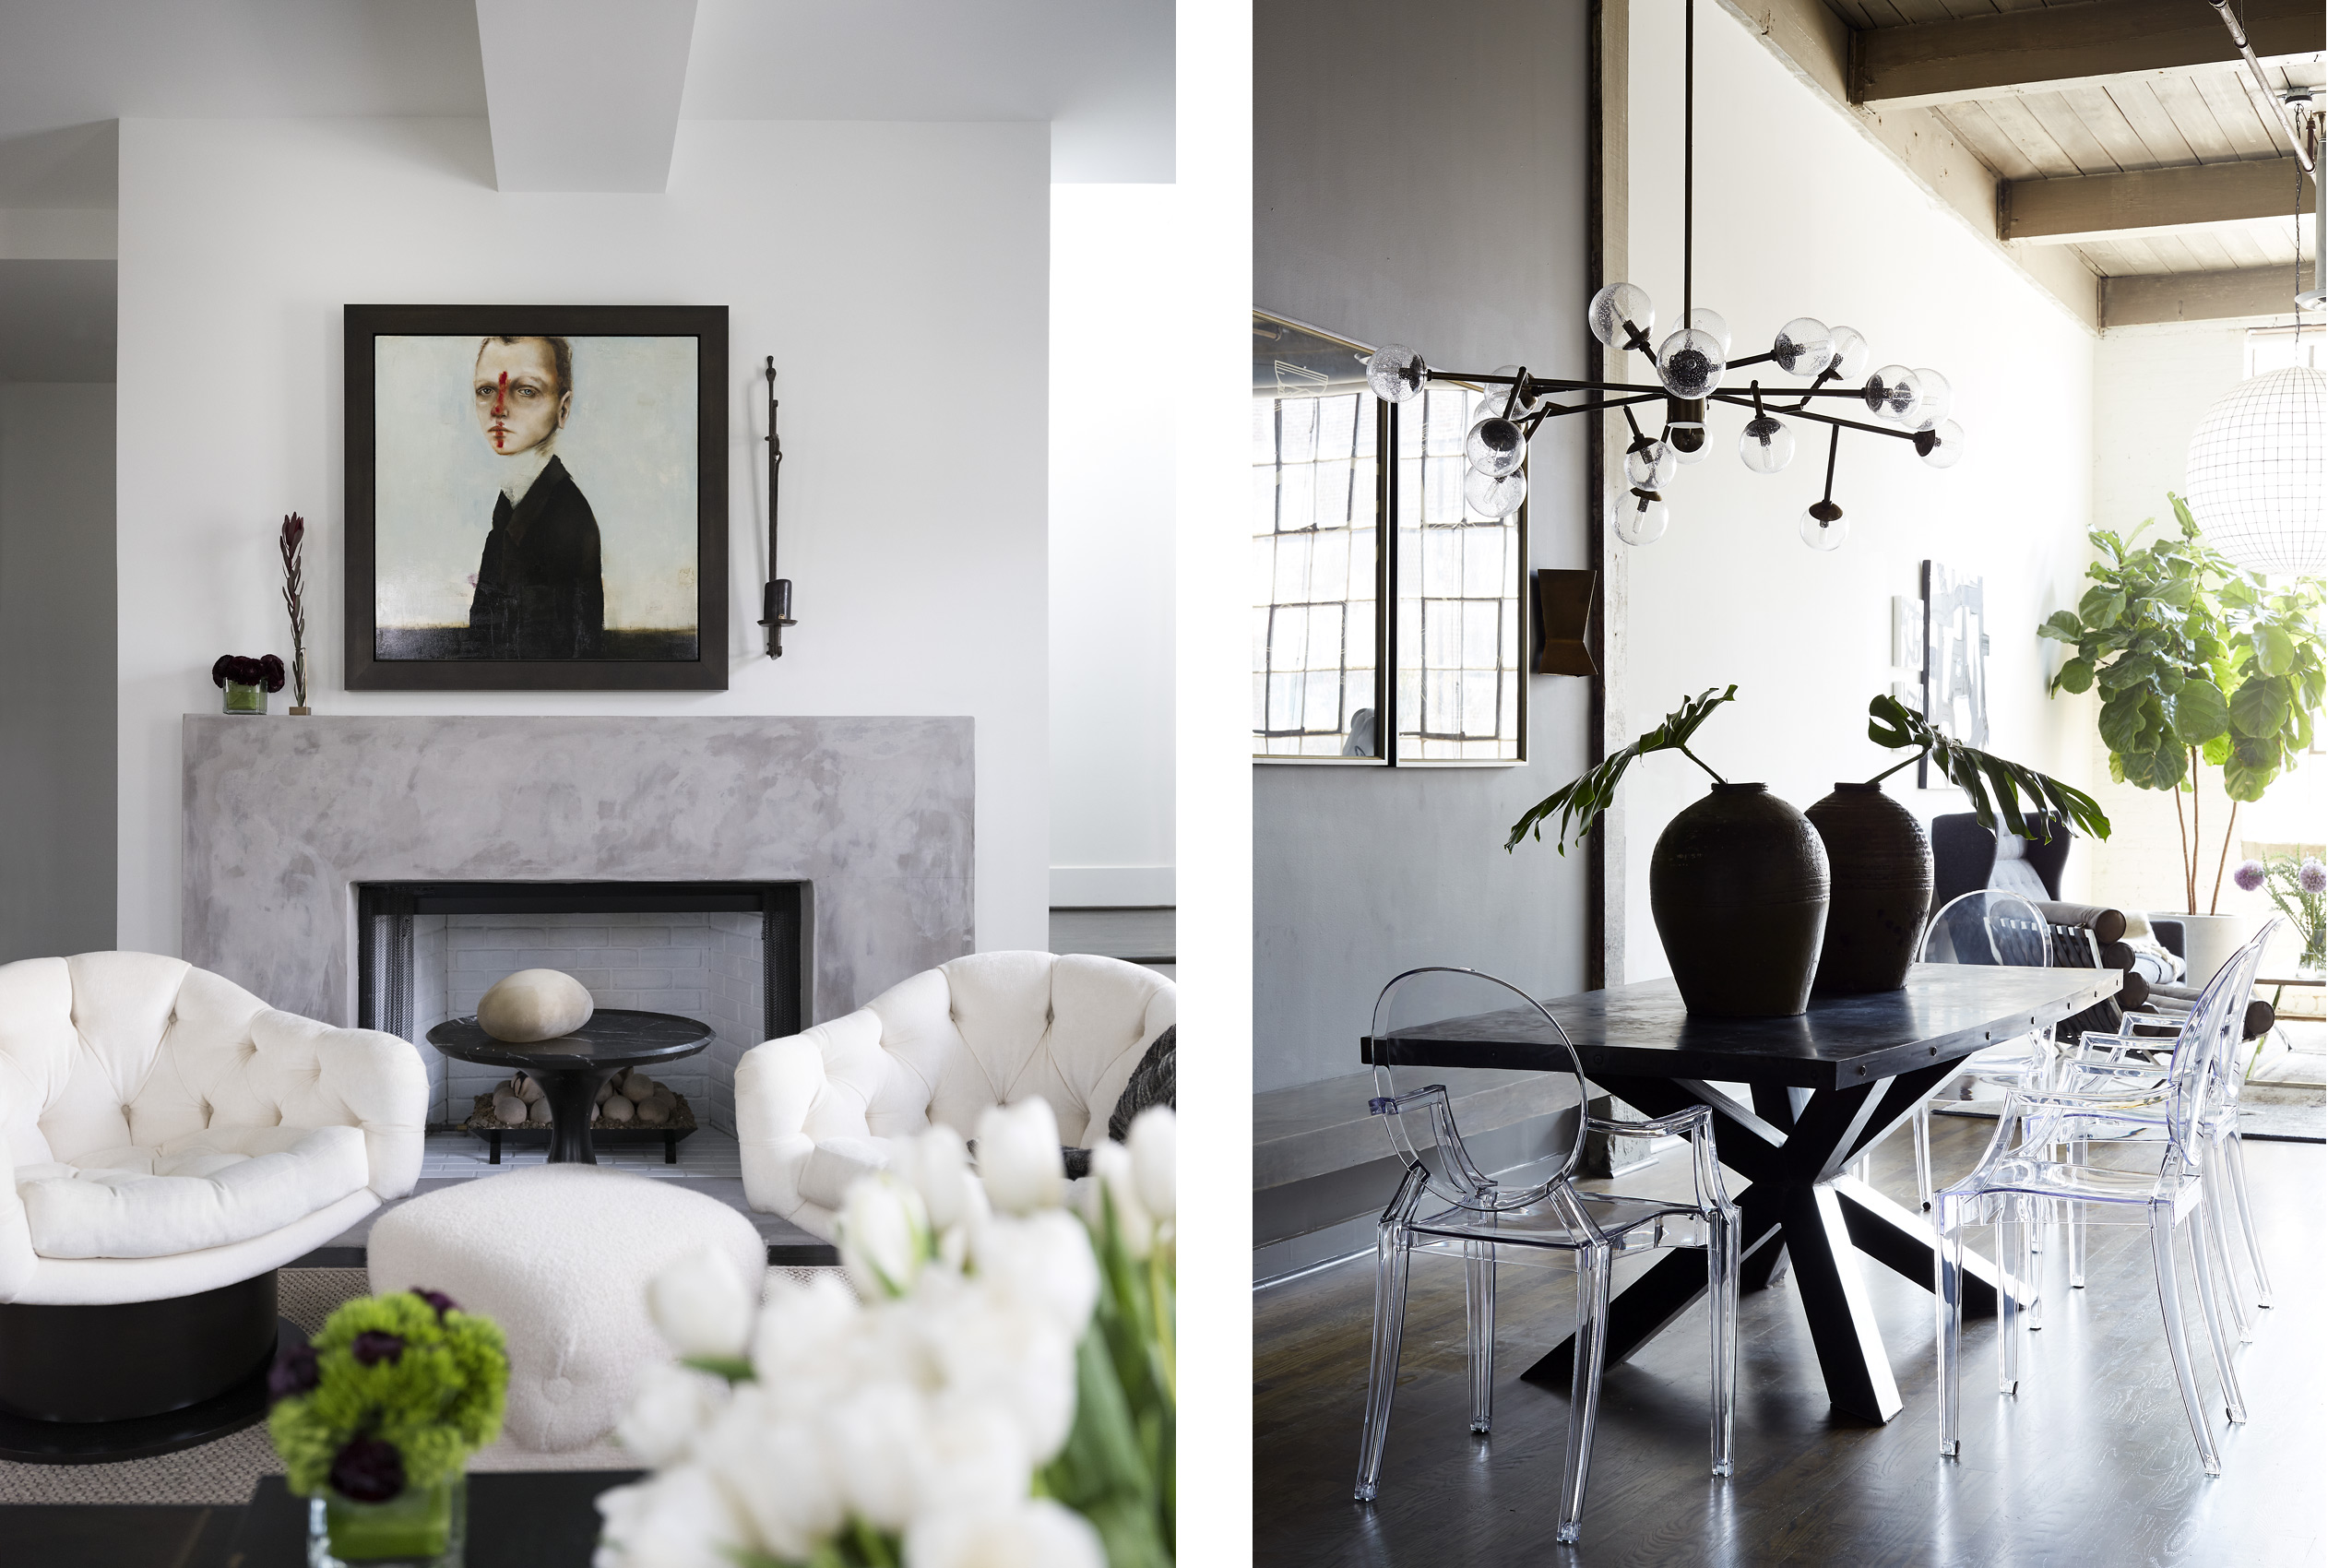 Ryan Hughes left and Minhnuyet Hardy right Interiors